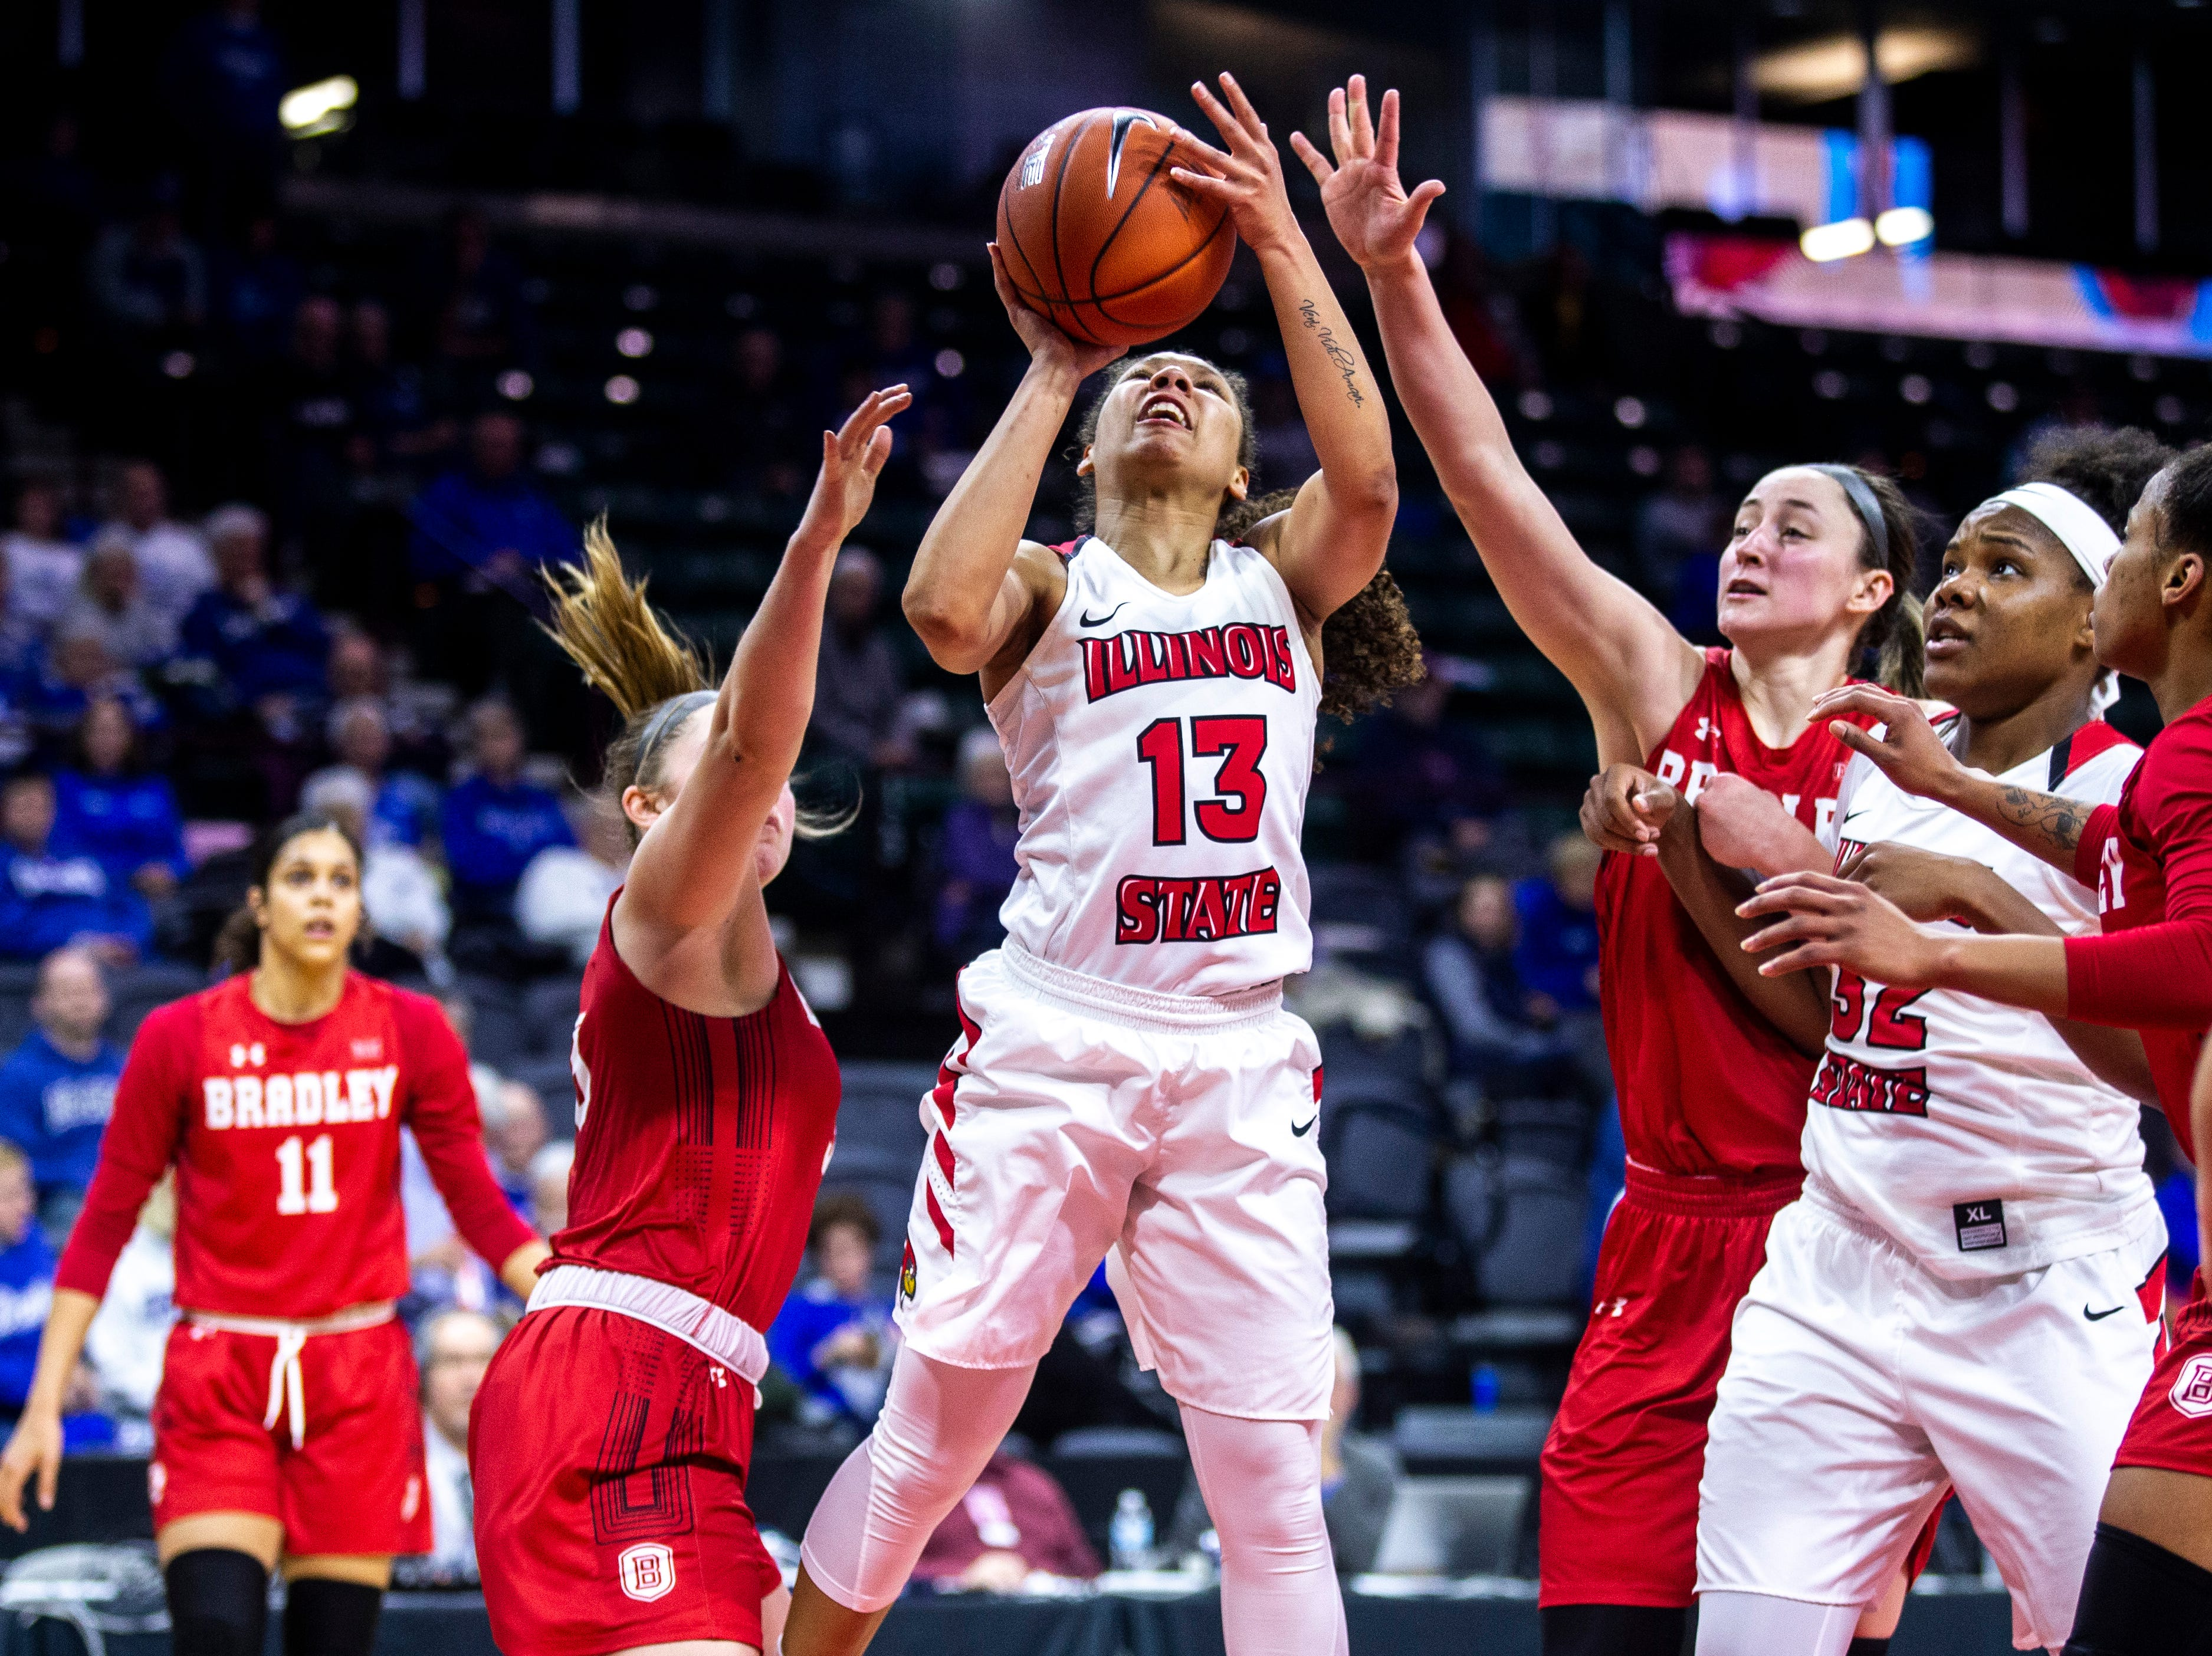 Illinois State guard Katrina Beck (13) drives to the basket while drawing a foul from Bradley guard Gabi Haack, second from left, during a NCAA Missouri Valley Conference women's basketball quarterfinal tournament game, Friday, March 15, 2019, at the TaxSlayer Center in Moline, Illinois.